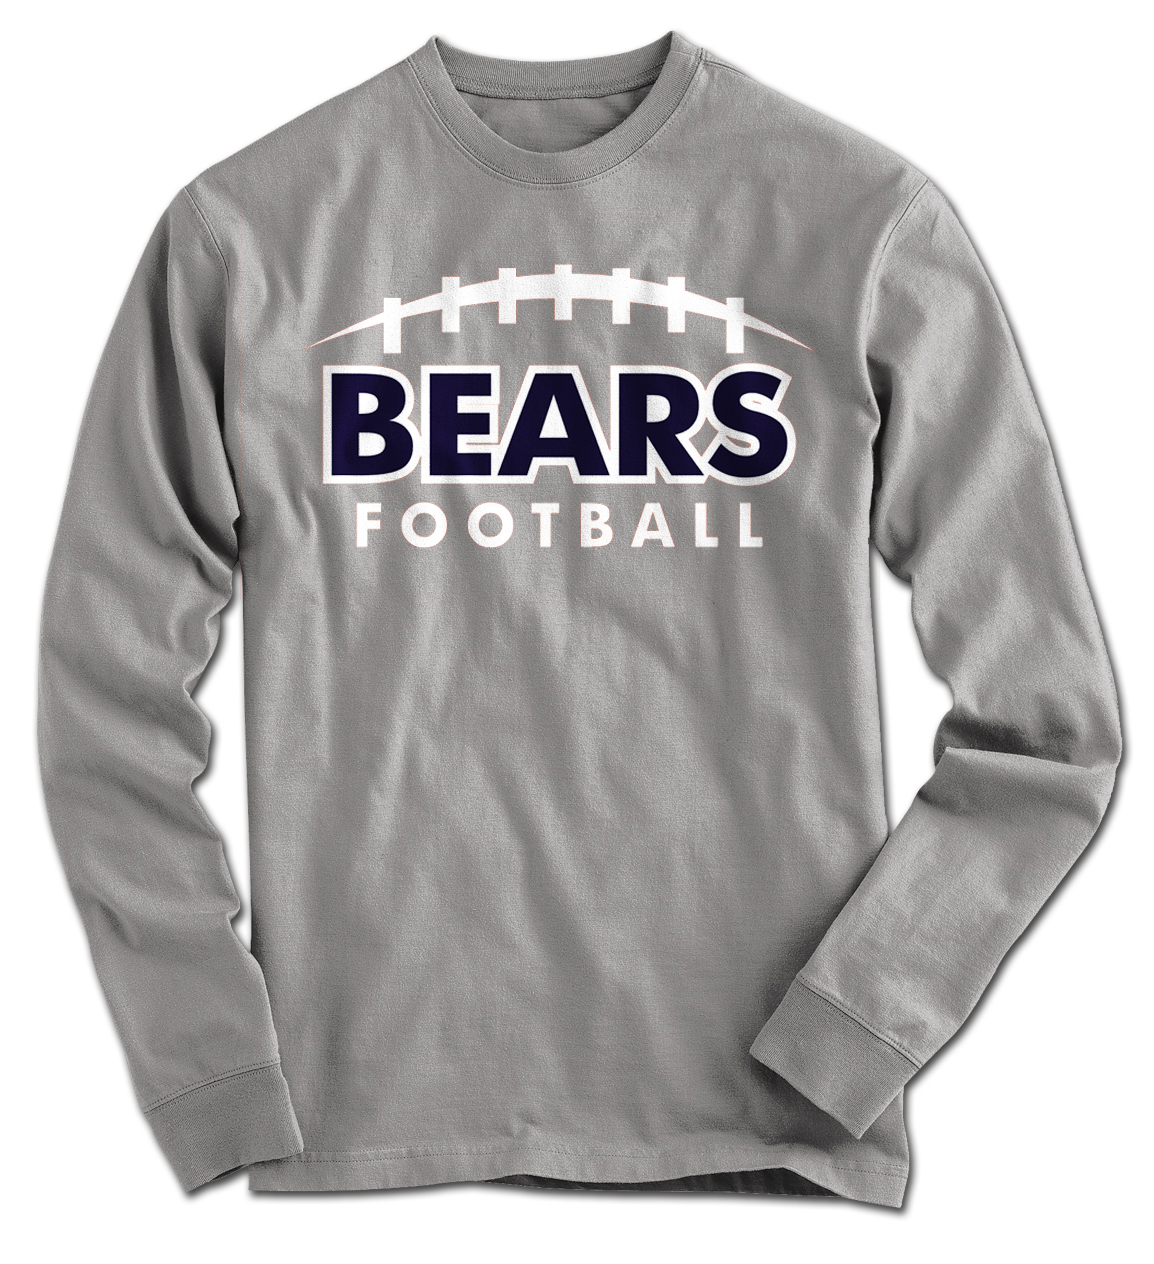 Bears LS 2017 2 - Gray